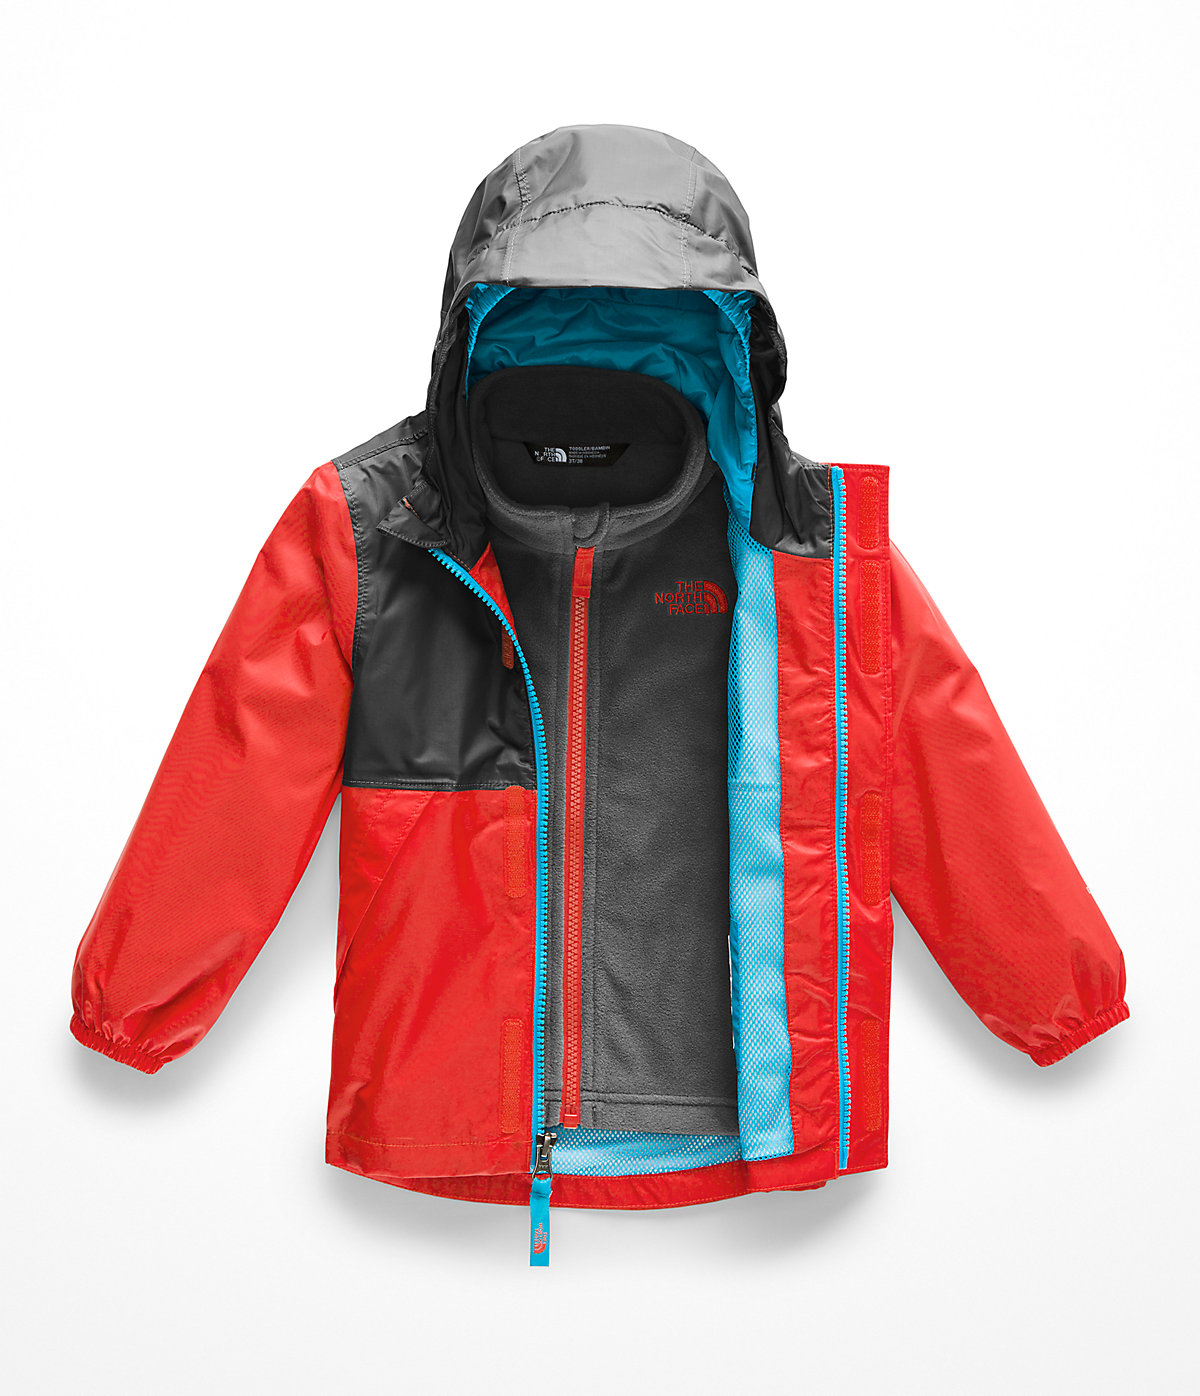 05130f3fa The North Face Toddler Stormy Rain Triclimate 3-in-1 Jacket in 2019 ...